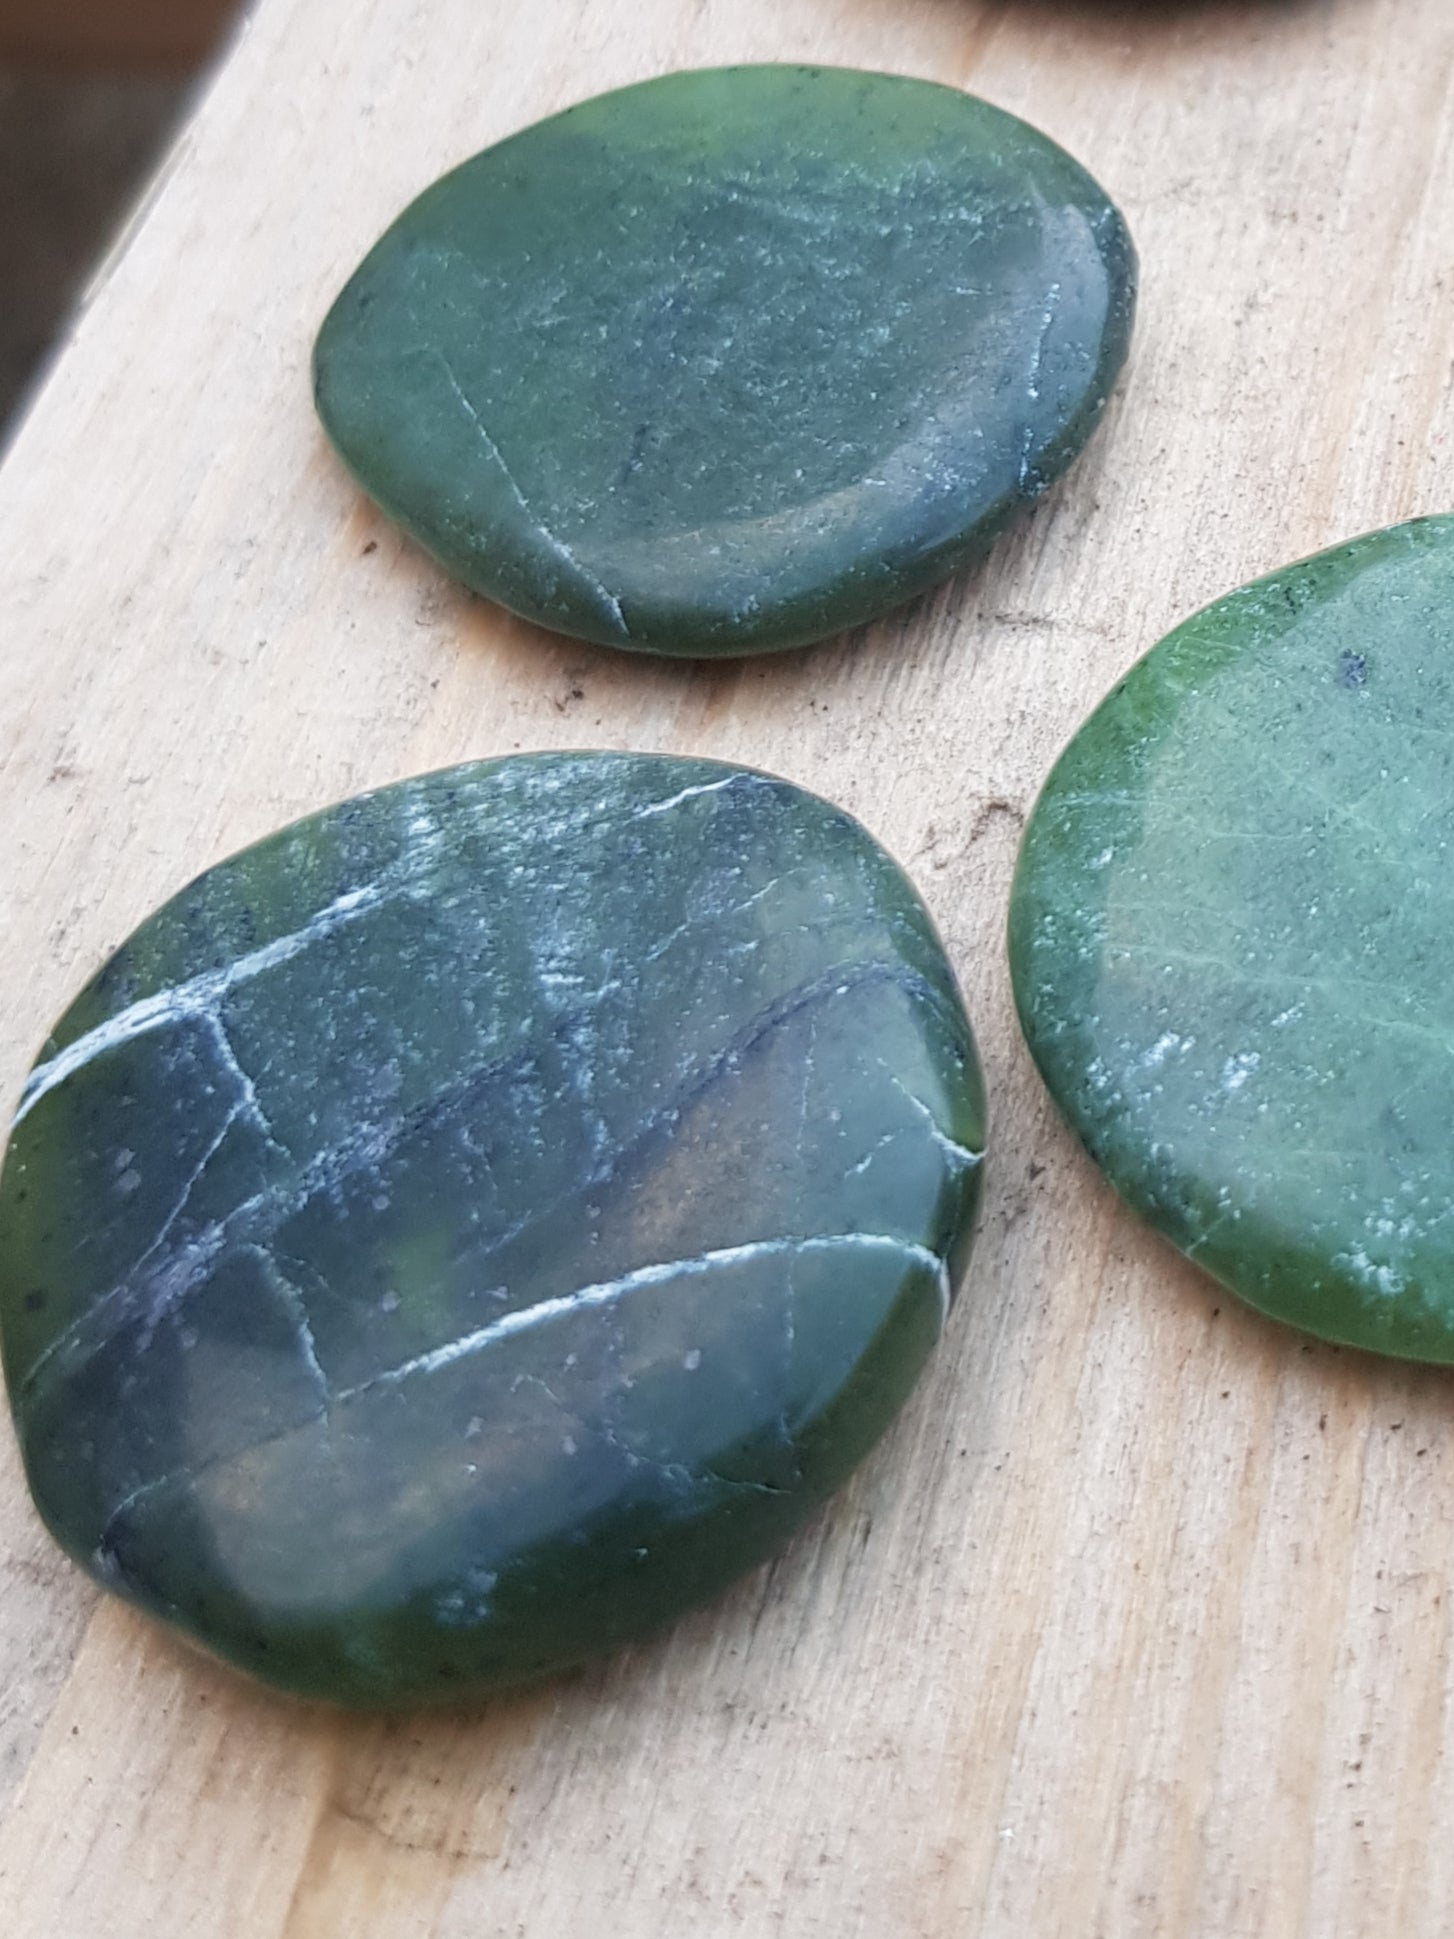 Nephrite jade palmstone - The Science of Magic